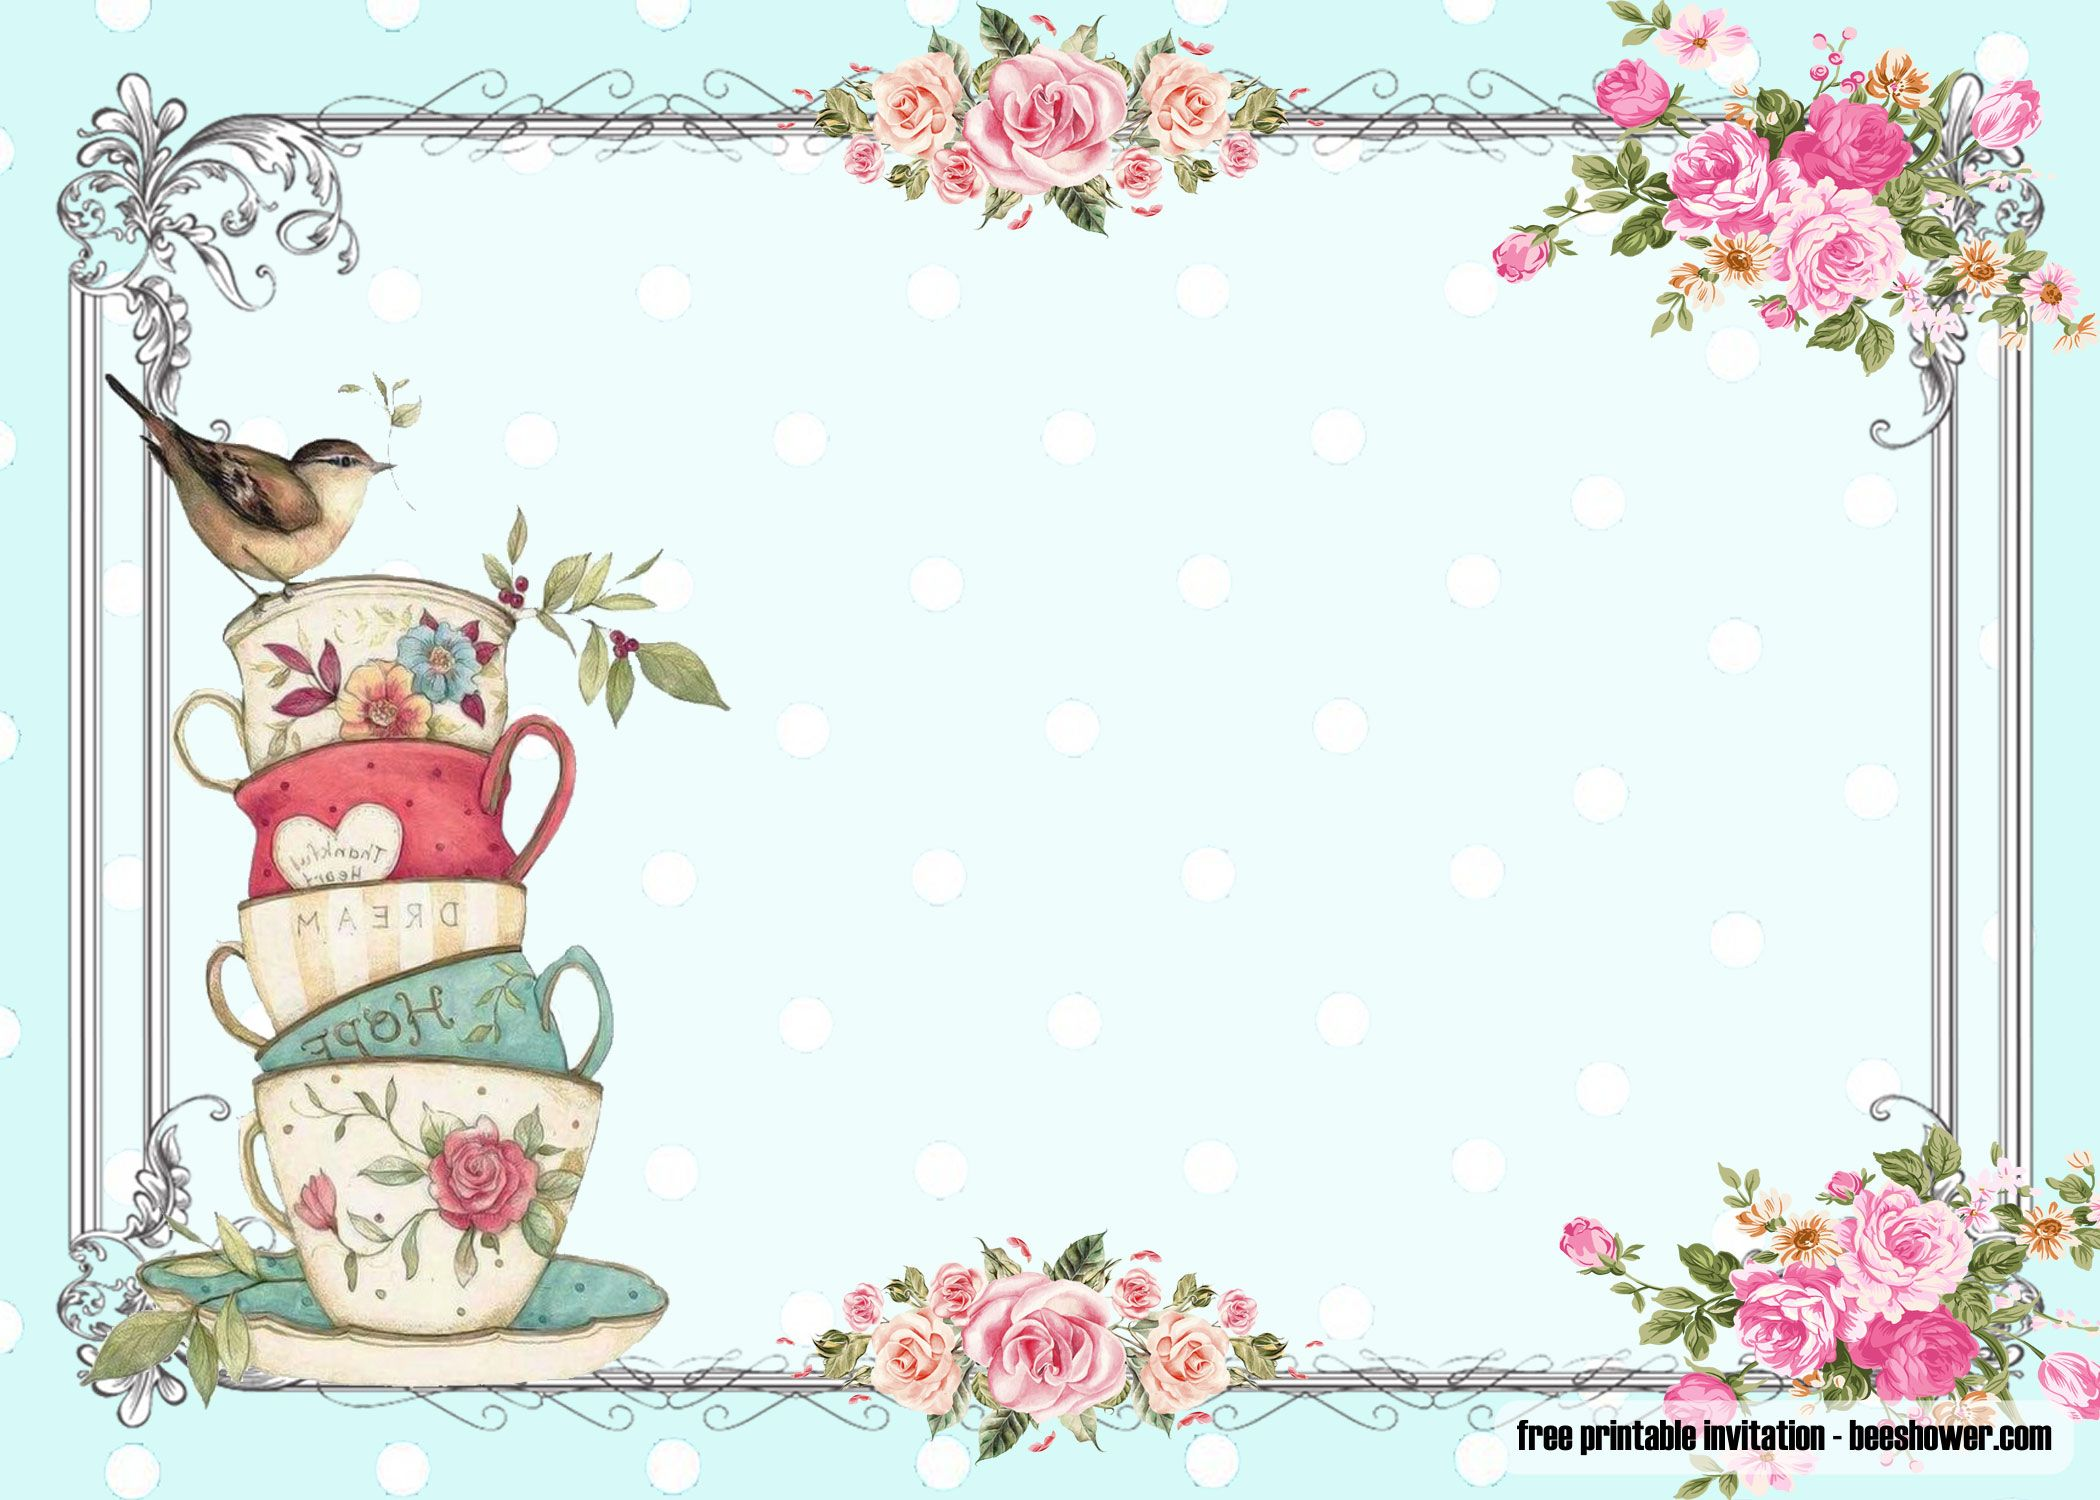 FREE Vintage Tea Party Baby Shower Invitations  DREVIO in 5